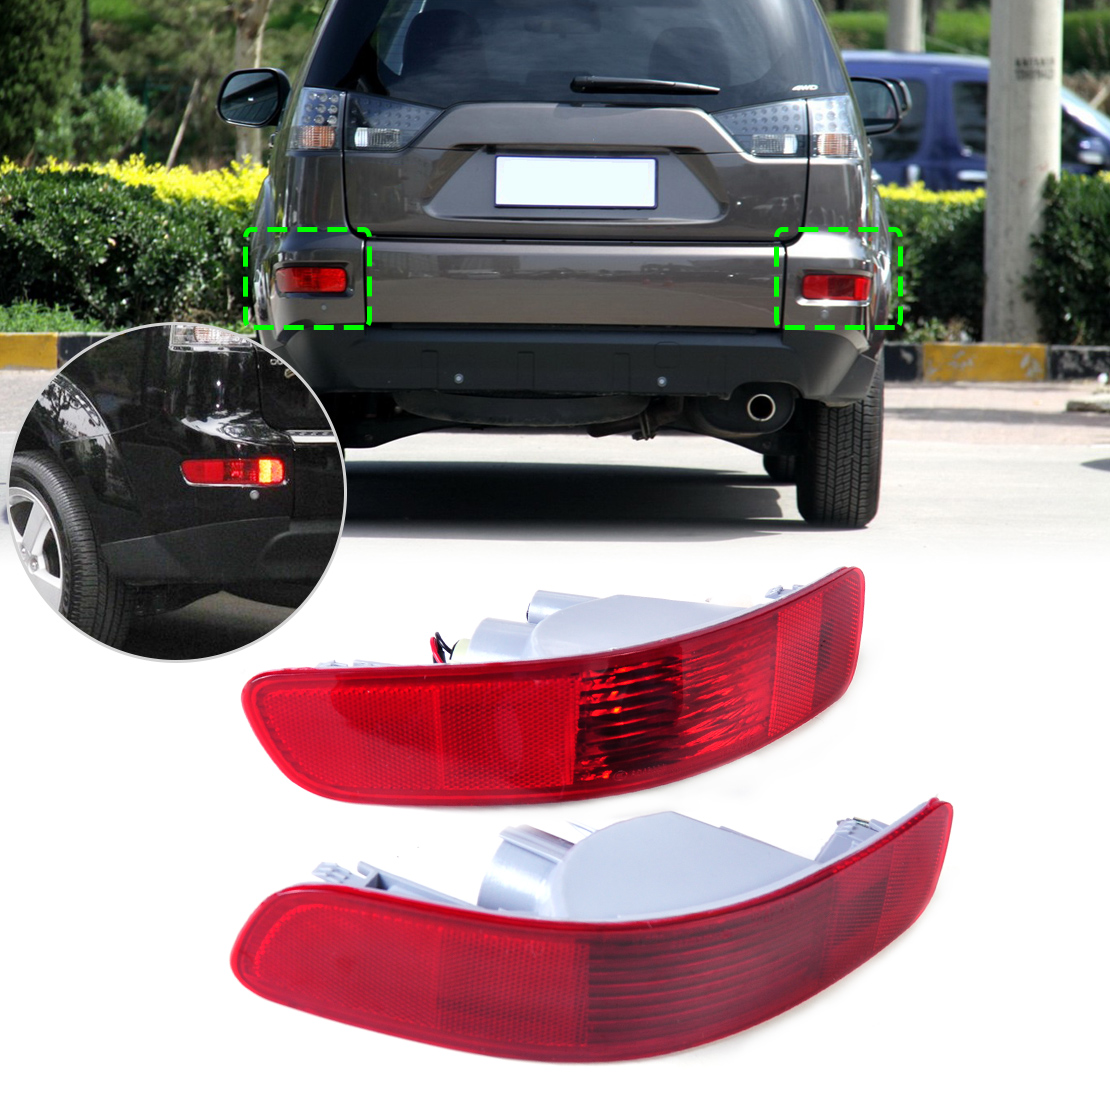 beler 2x Rear Right Left Tail Fog Light Lamp Reflector 8352A005 8337A015 for Mitsubishi Outlander 2007 2008 2009 2010 2011 2012 oem 8330a396 rear tail light outer brake stop lamp right rh left lh for mitsubishi outlander ex 07 13 car accessories